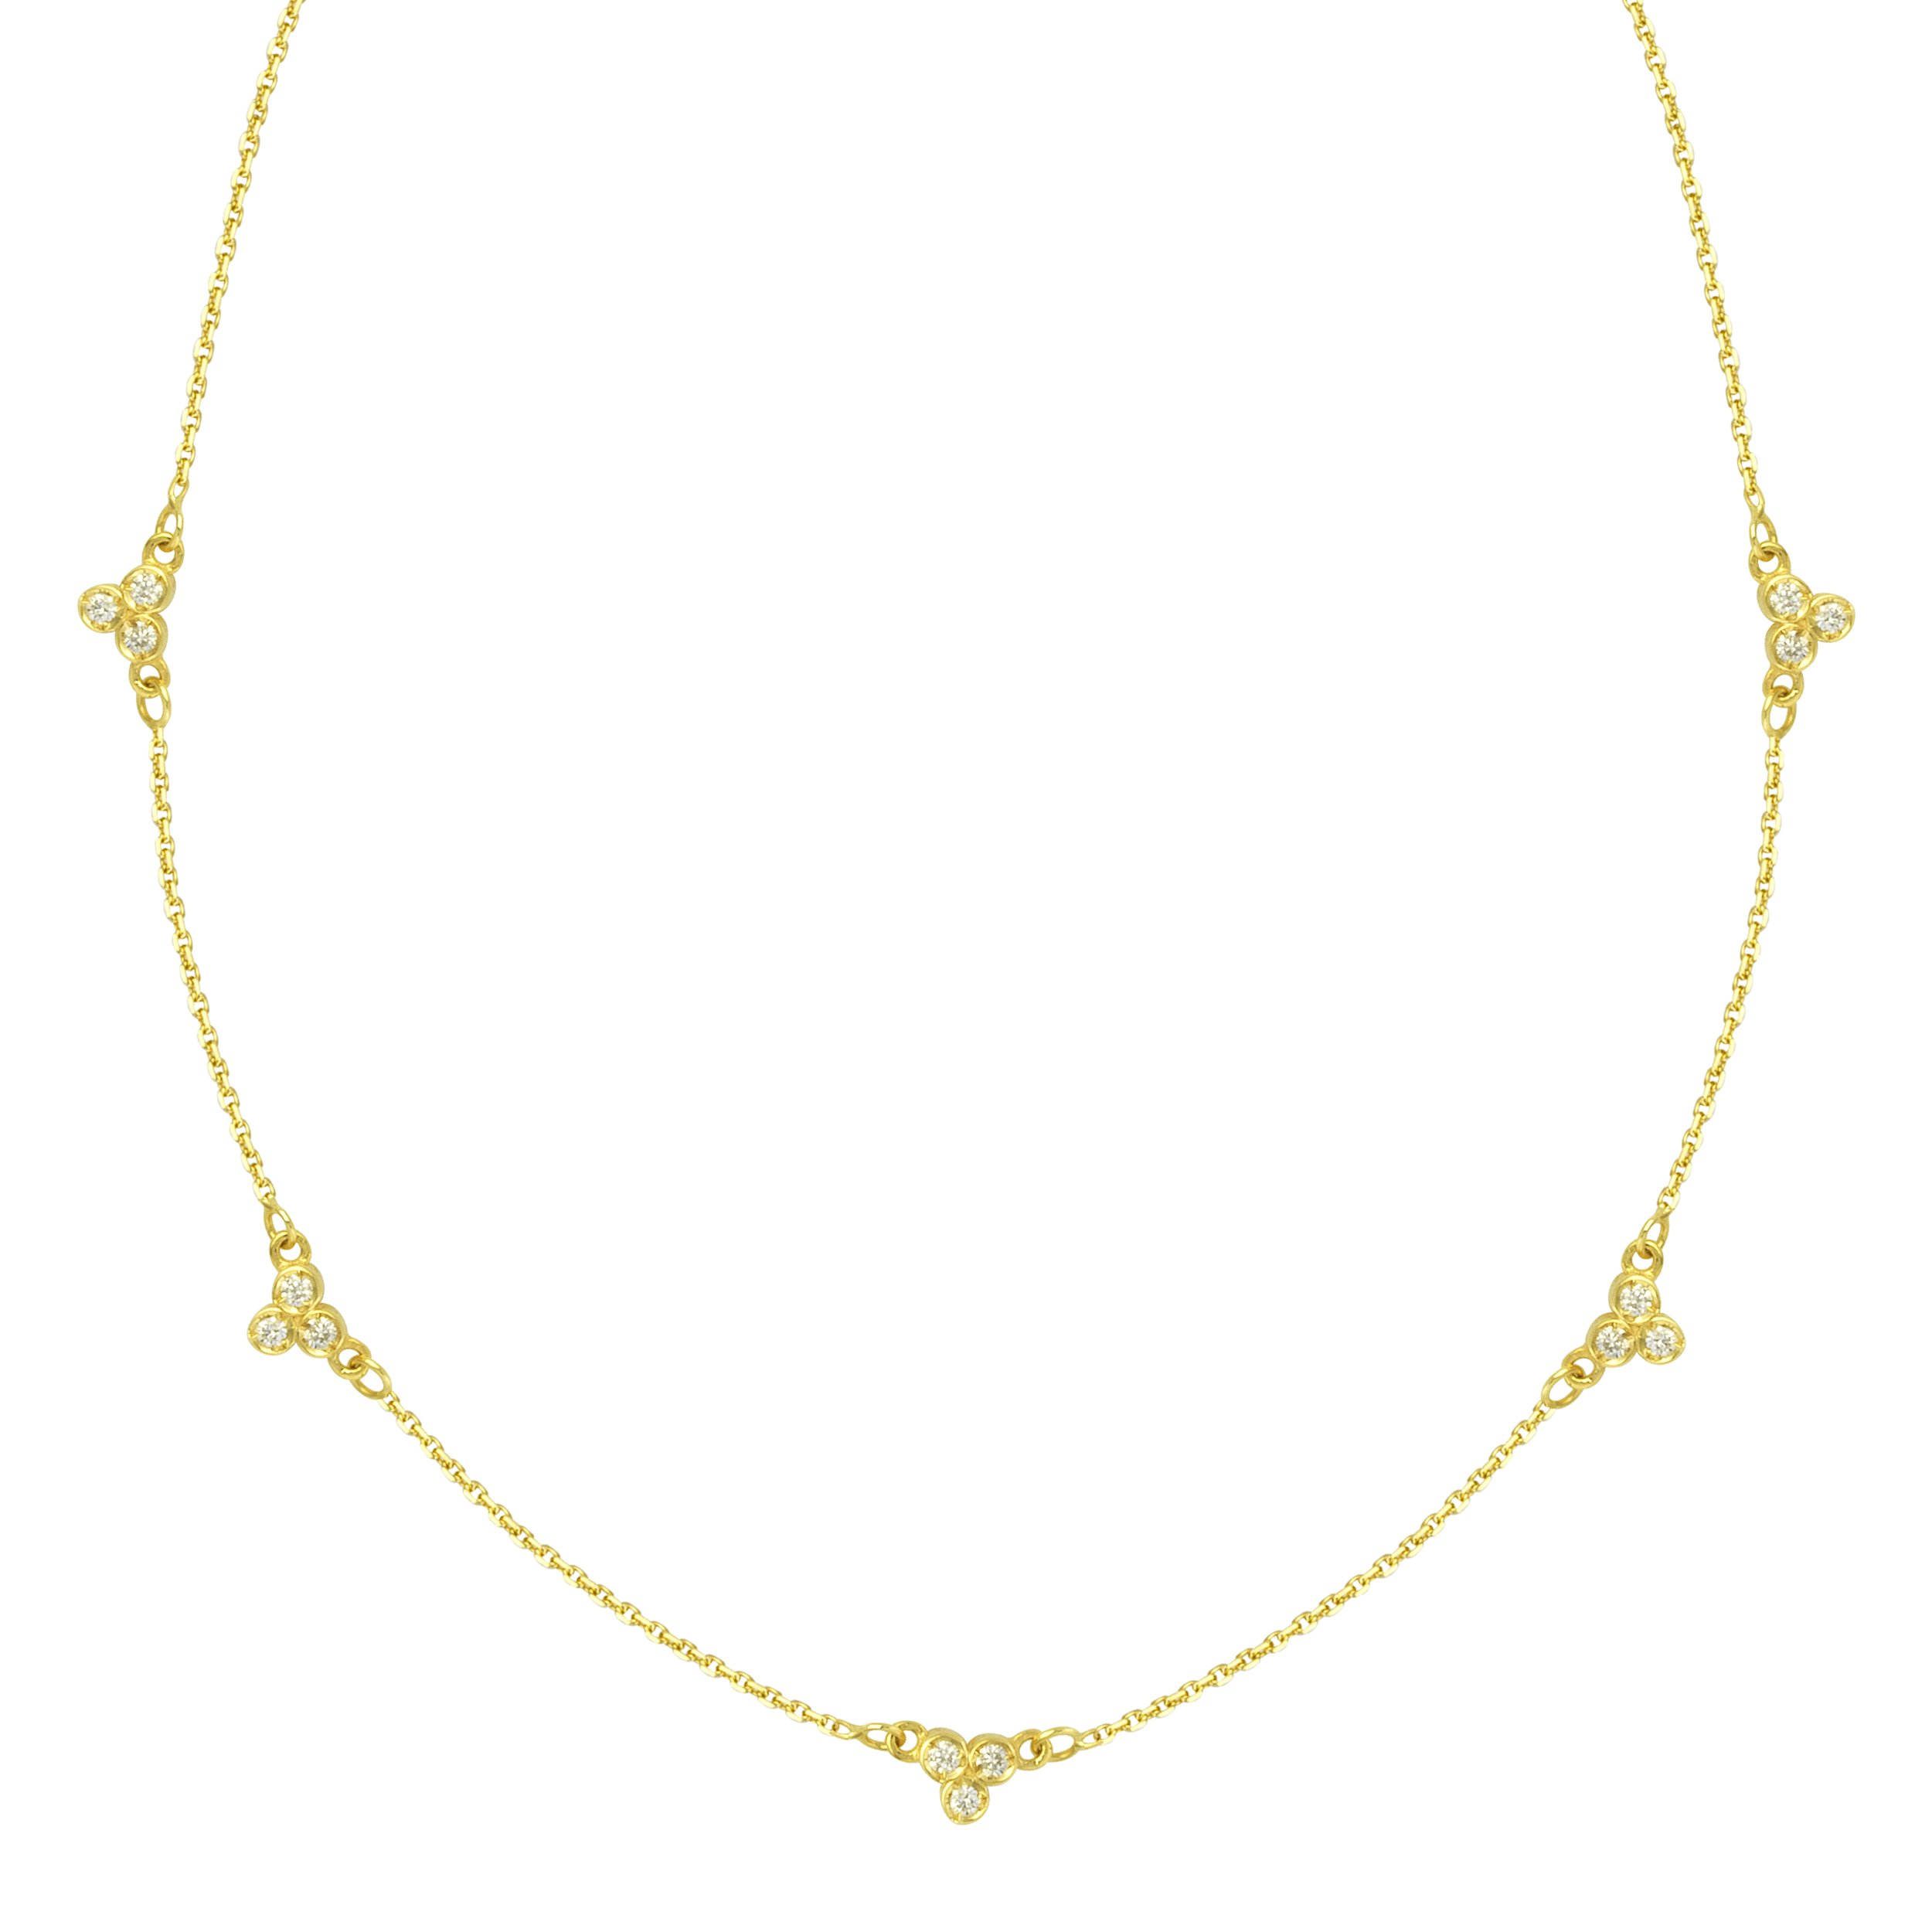 14k Yellow Gold Station Necklace with Diamond Accents Adjustable Length